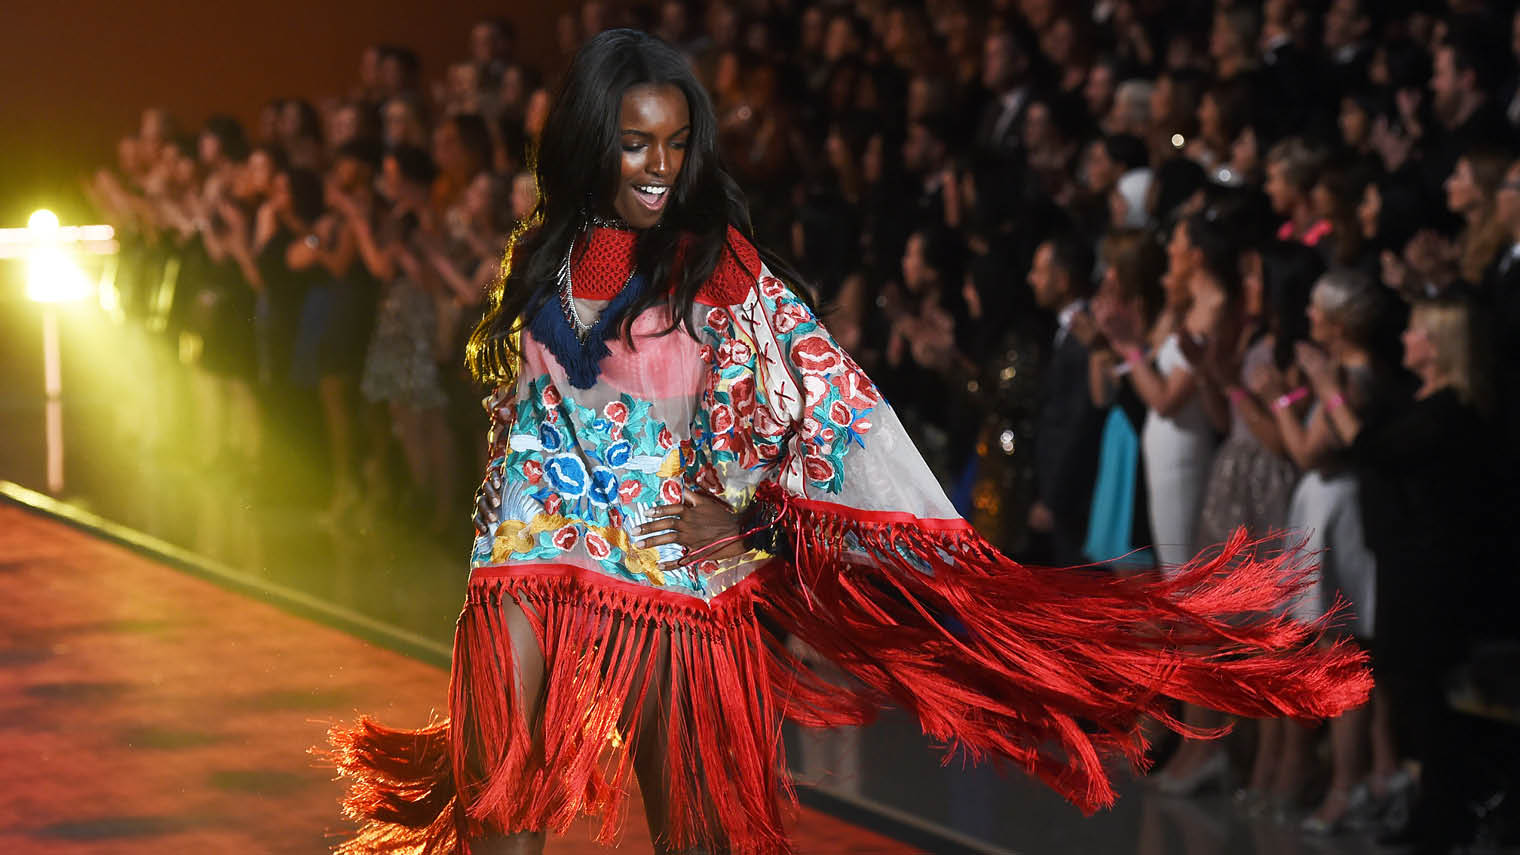 British model Leomie Anderson has voiced her frustration at make-up artists being ill-equipped to work with darker- skin models